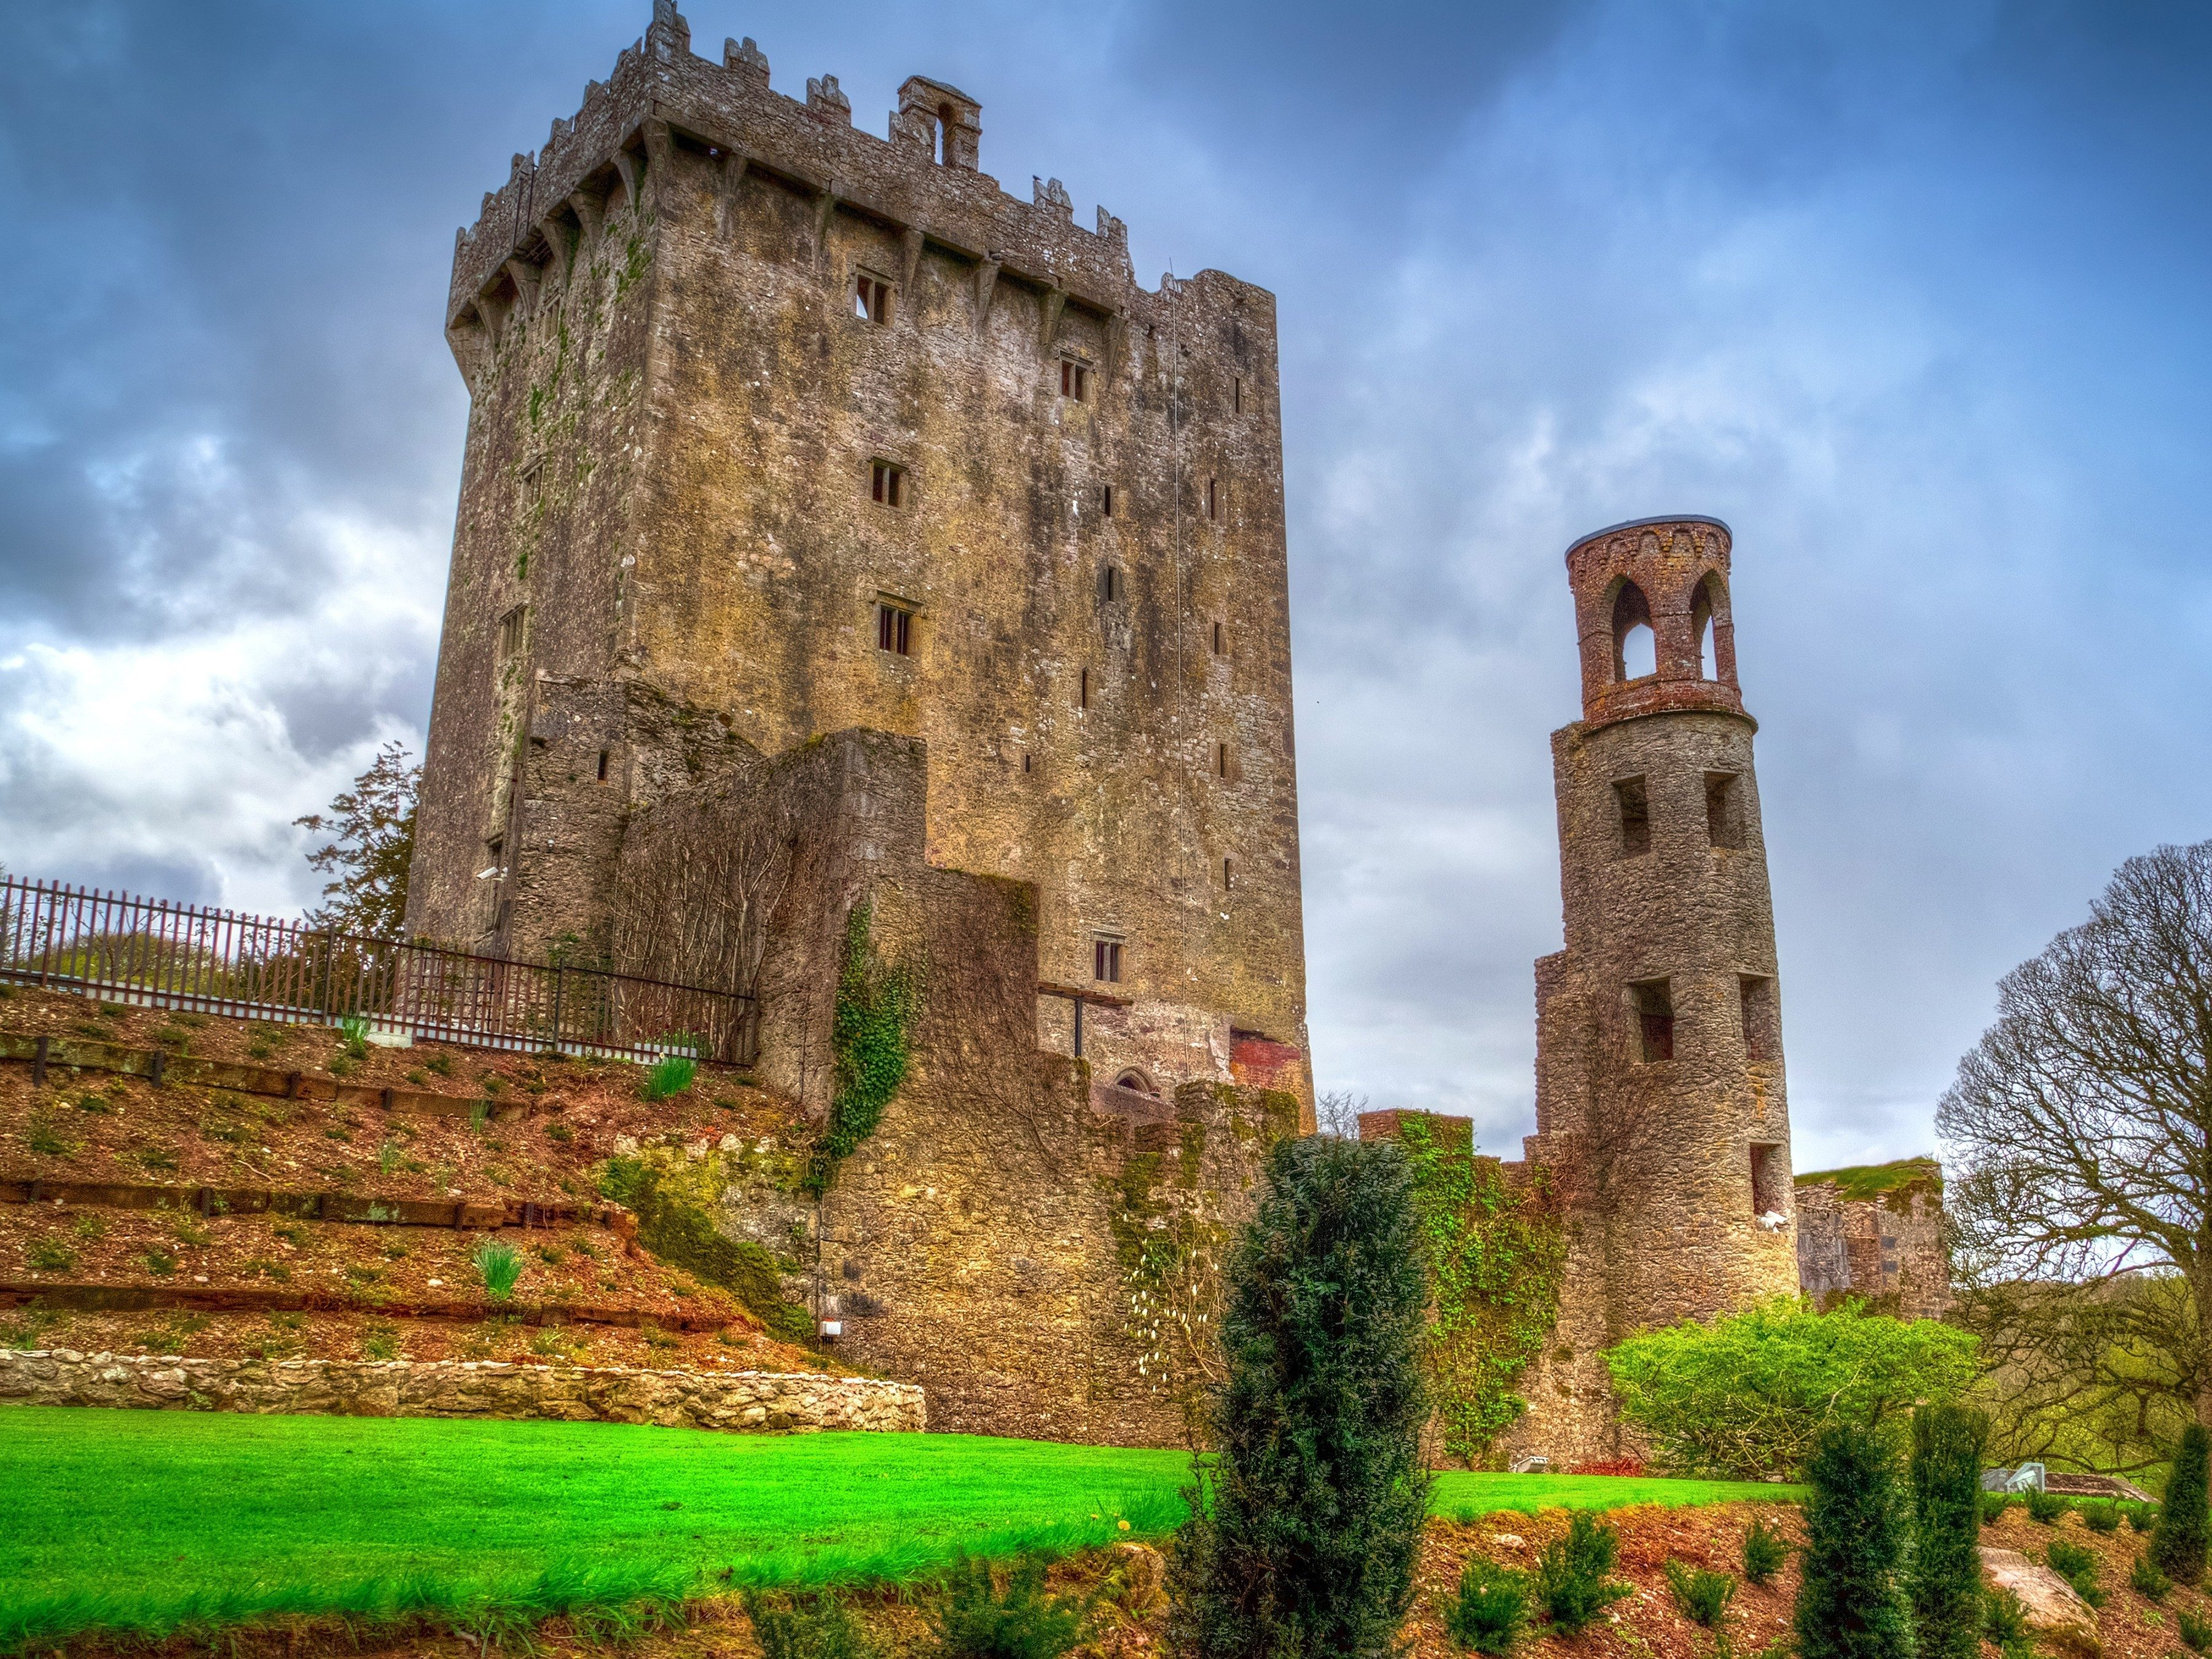 1. Tour the Castles of Ireland